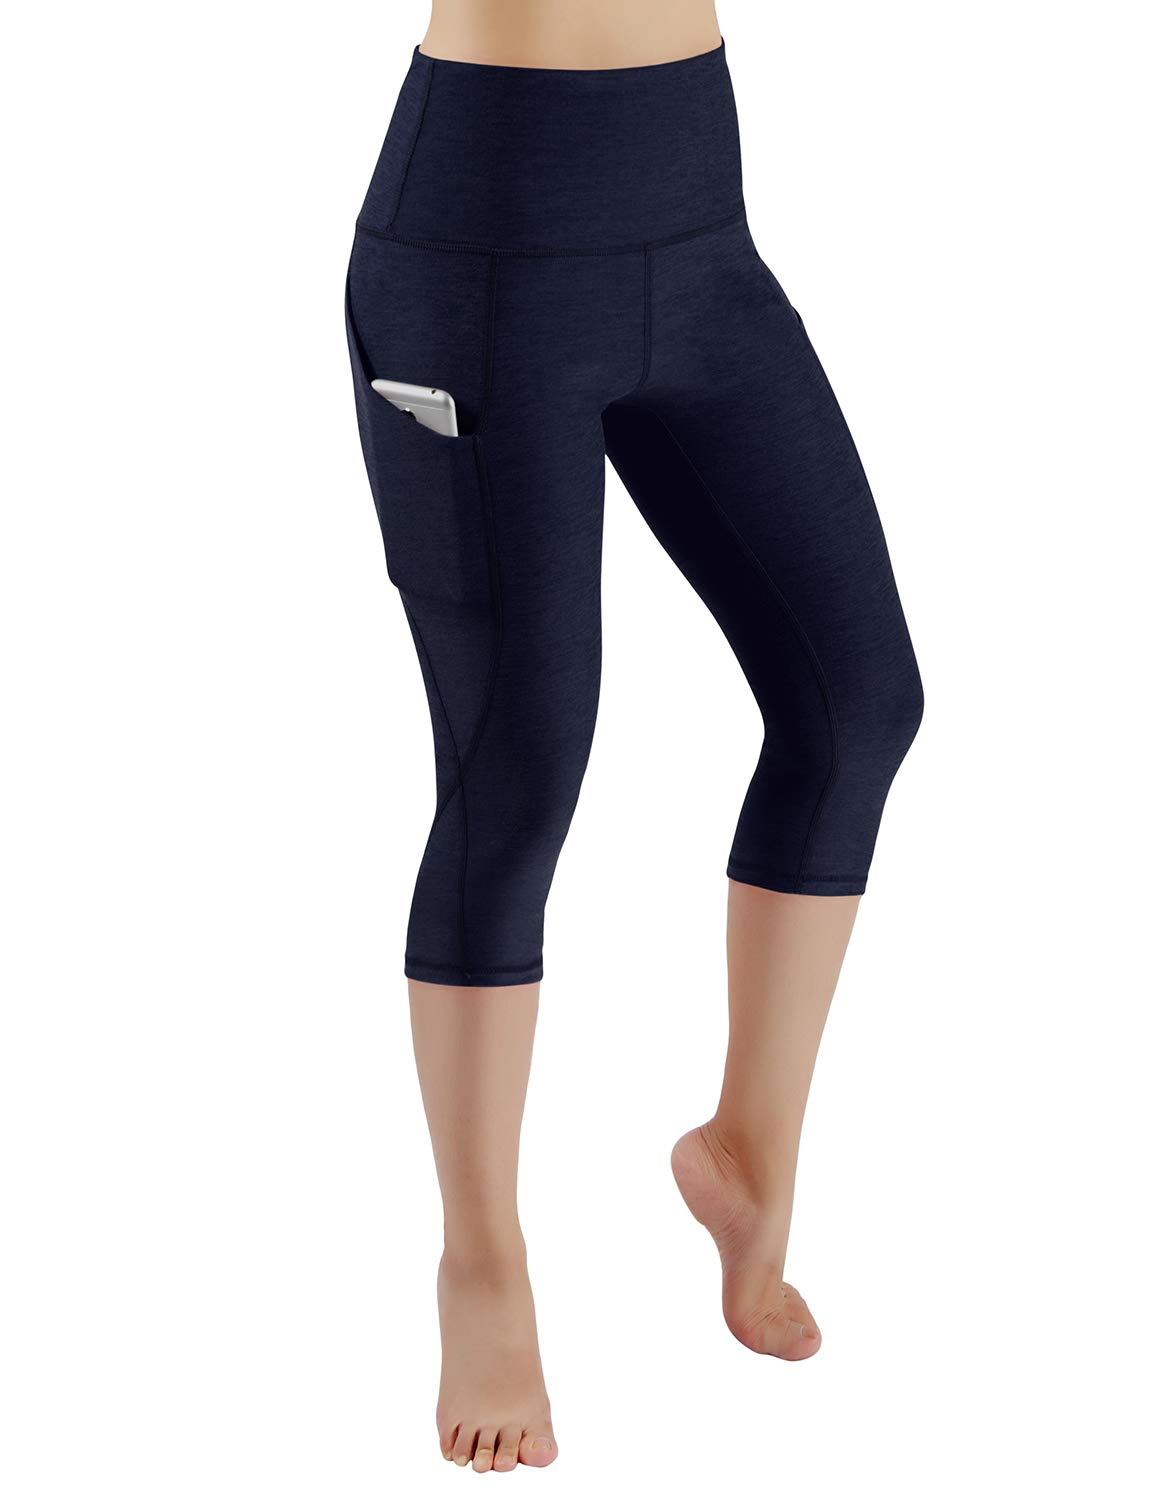 ODODOS High Waist Out Pocket Yoga Capris Pants Tummy Control Workout Running 4 Way Stretch Yoga Leggings,Navy,X-Small by ODODOS (Image #2)